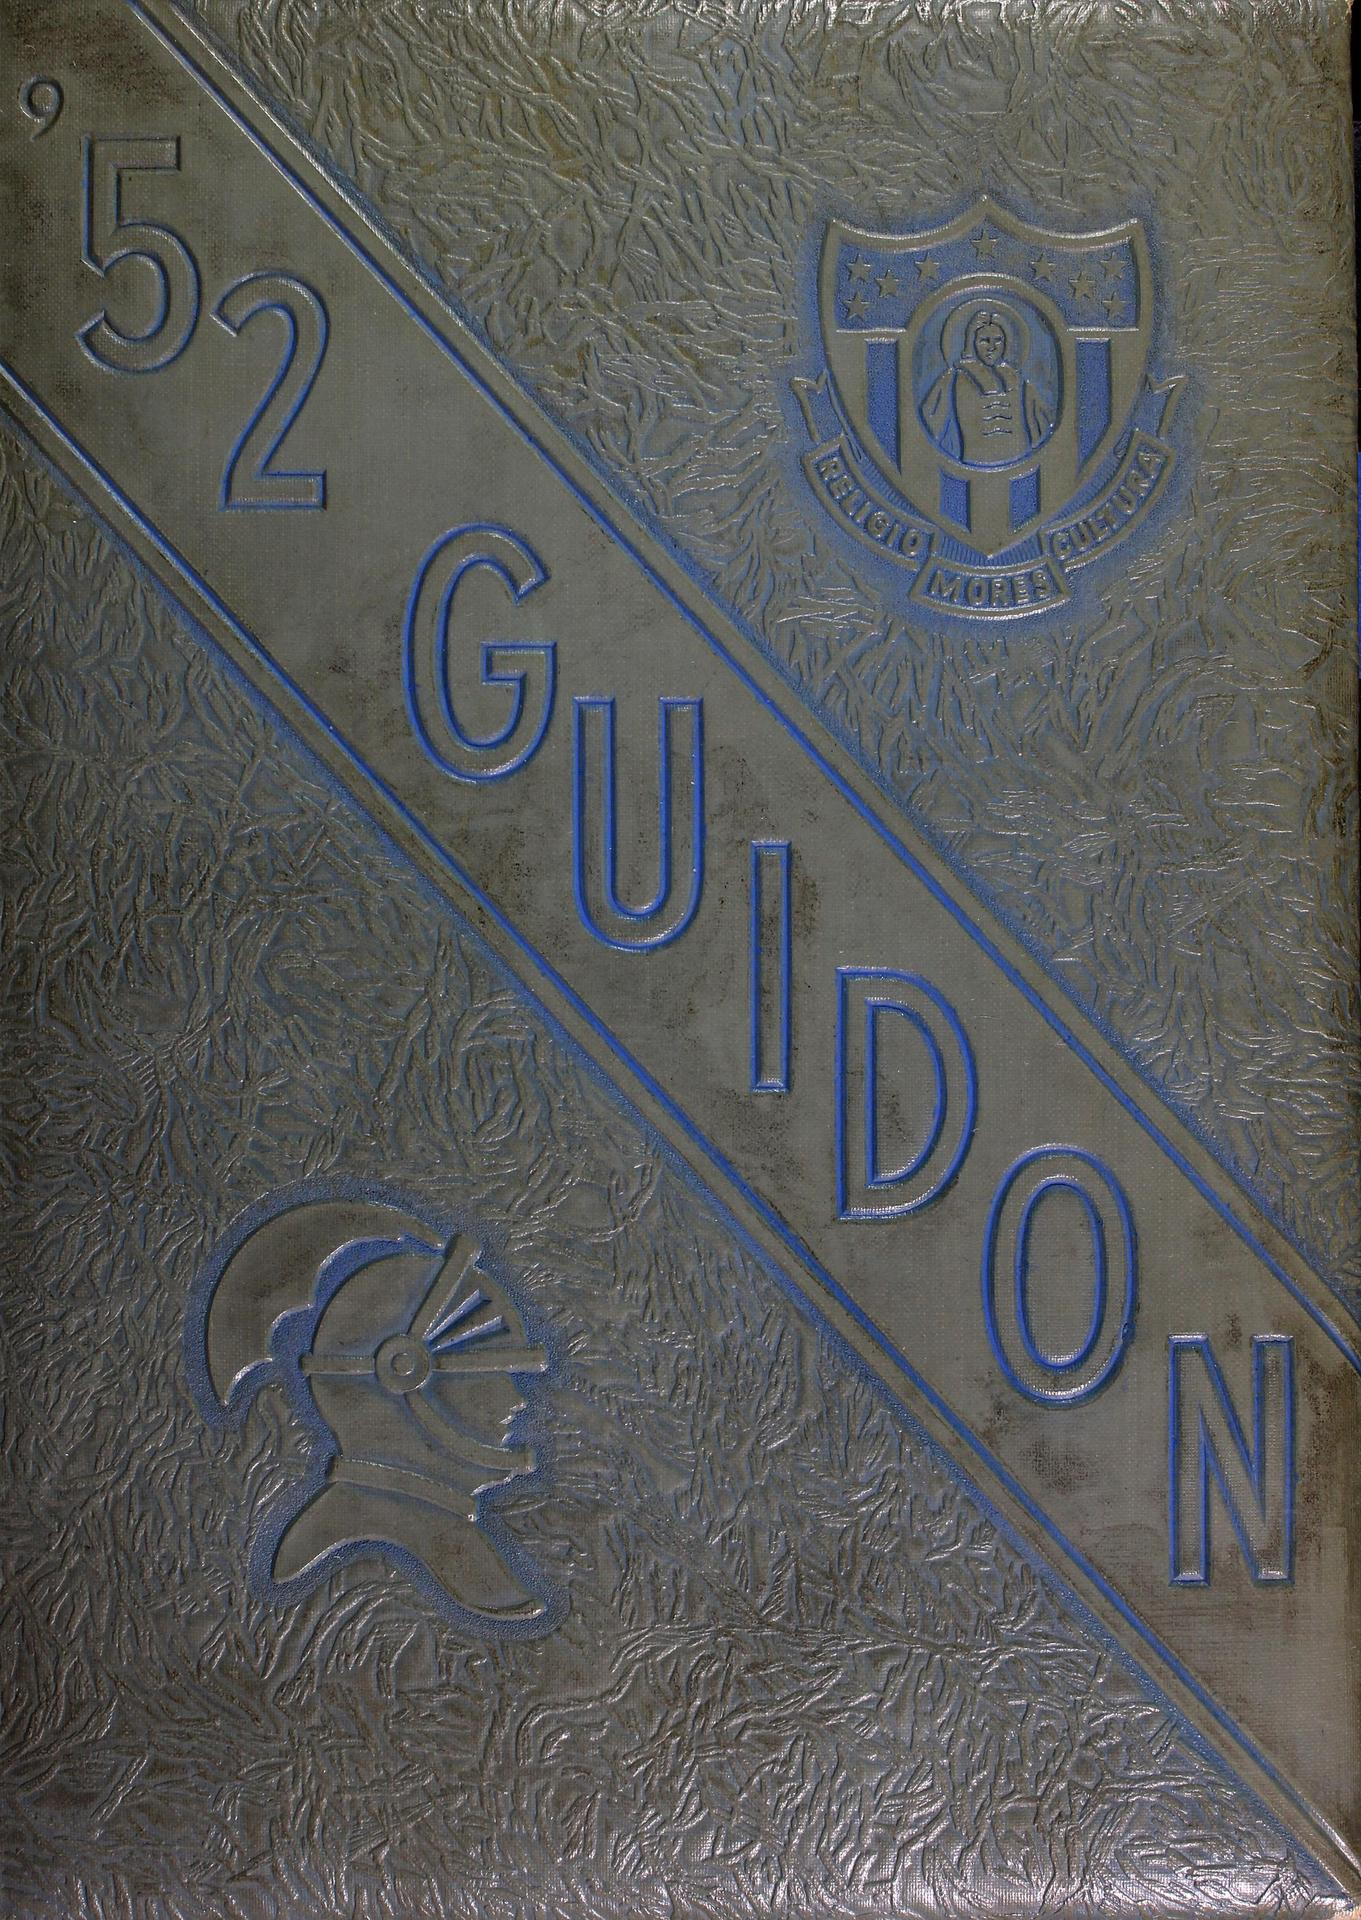 1952 CBC Yearbook